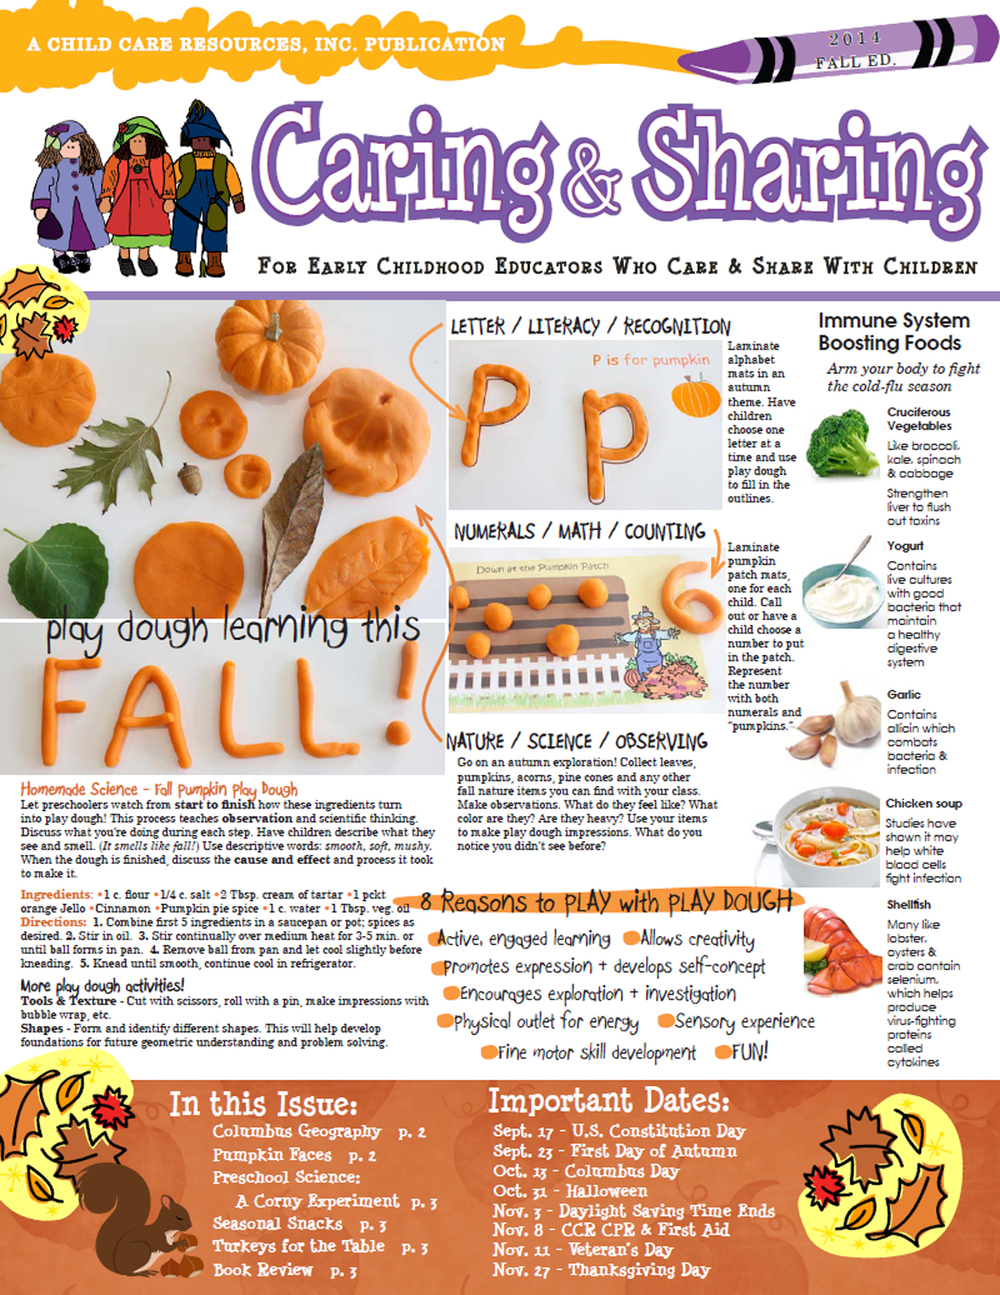 CCR Caring&Sharing Fall 2014 Edition